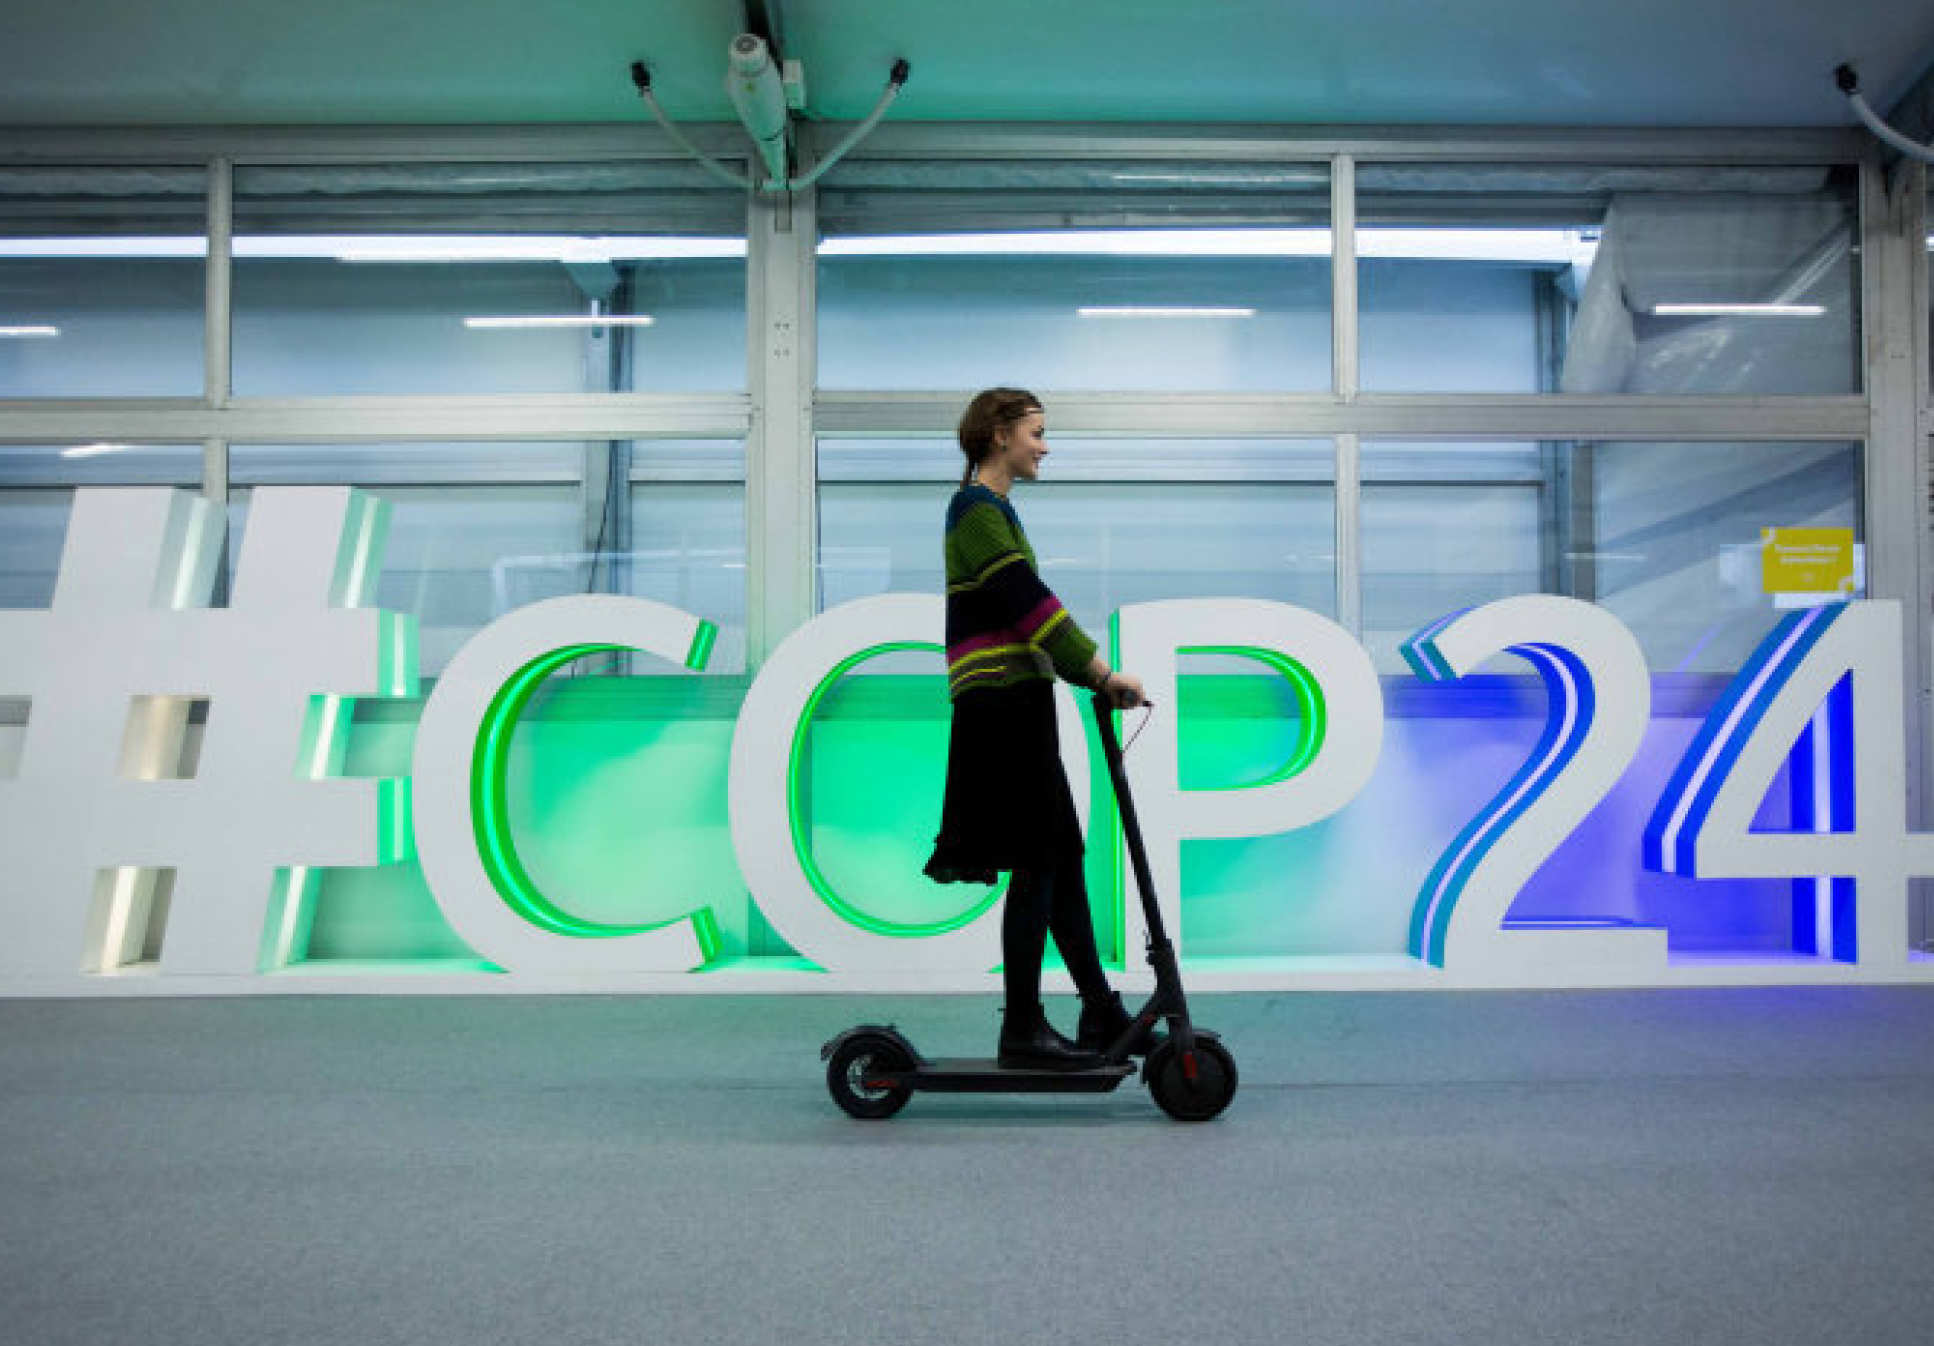 Person on a scooter going past the sign for COP24